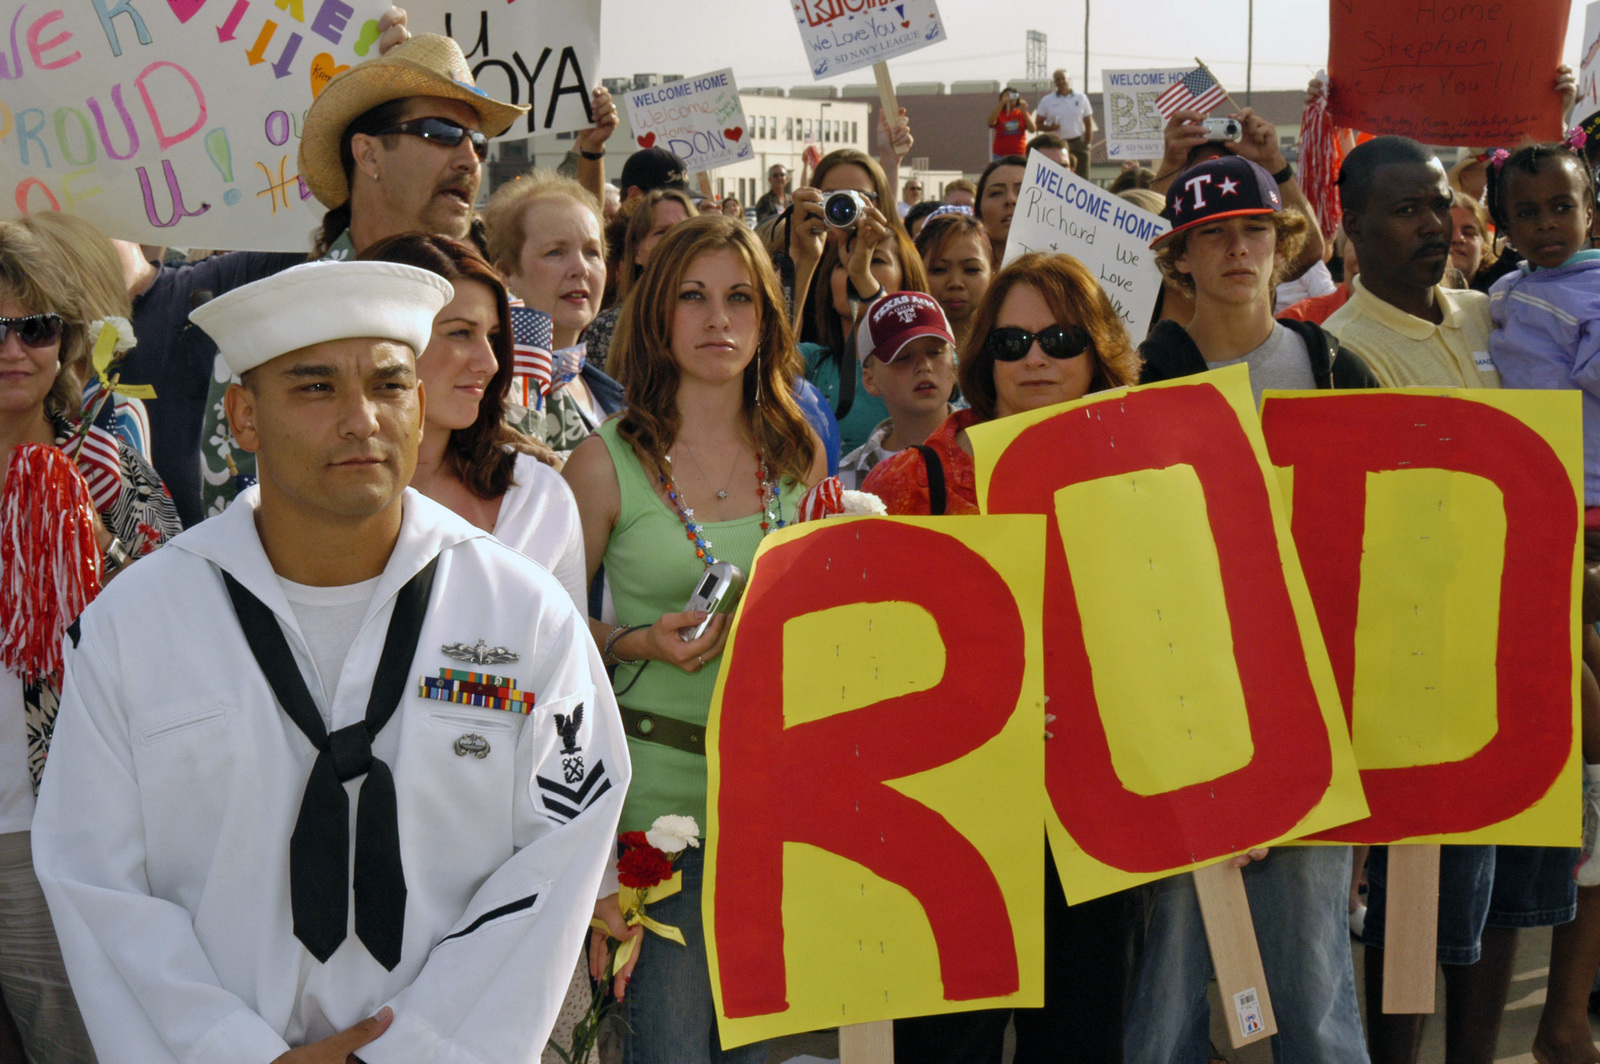 USN Navy (USN) Boatswain Mate First Class (BM1) Nicholas Hurcado (left) awaits orders to let family and friends greet their loved ones aboard the USN Arleigh Burke Class (Flight 1) Guided Missile Destroyers USS DECATUR (DDG 73) during a homecoming celebration at Naval Station (NS) San Diego, California (CA). The DECATUR and Carrier Strike Group (CSG) 7 completed a regular scheduled six-month deployment in support of the Global War on Terrorism (GWOT) and Maritime Security Operations (MSO)